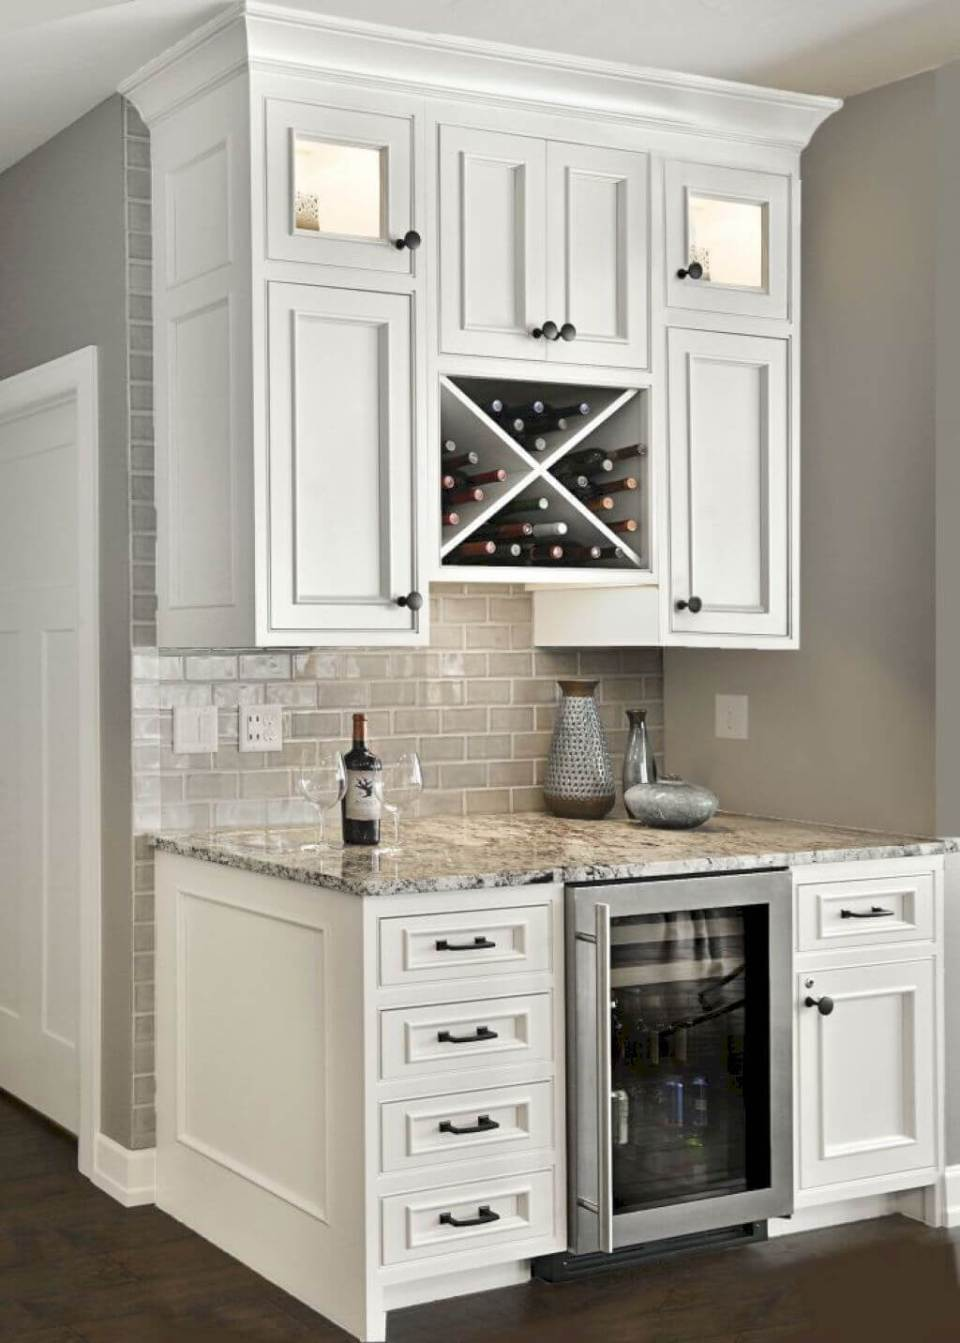 White Kitchen Cabinet Design | Best White Kitchen Cabinet Decor Ideas